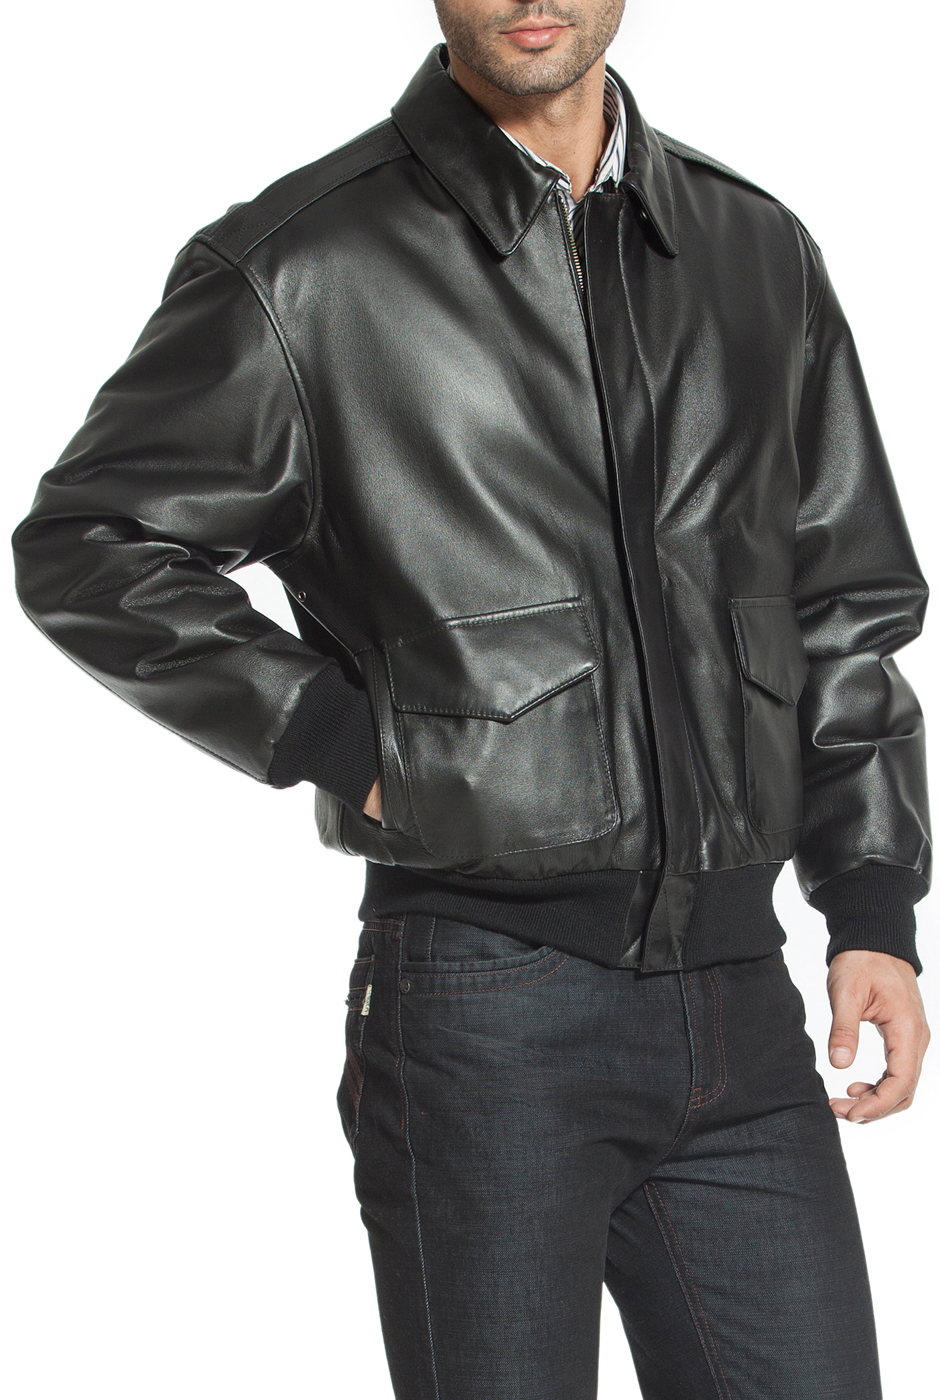 Top 10 Best Pilot Jacket - Top Ten Best Lists